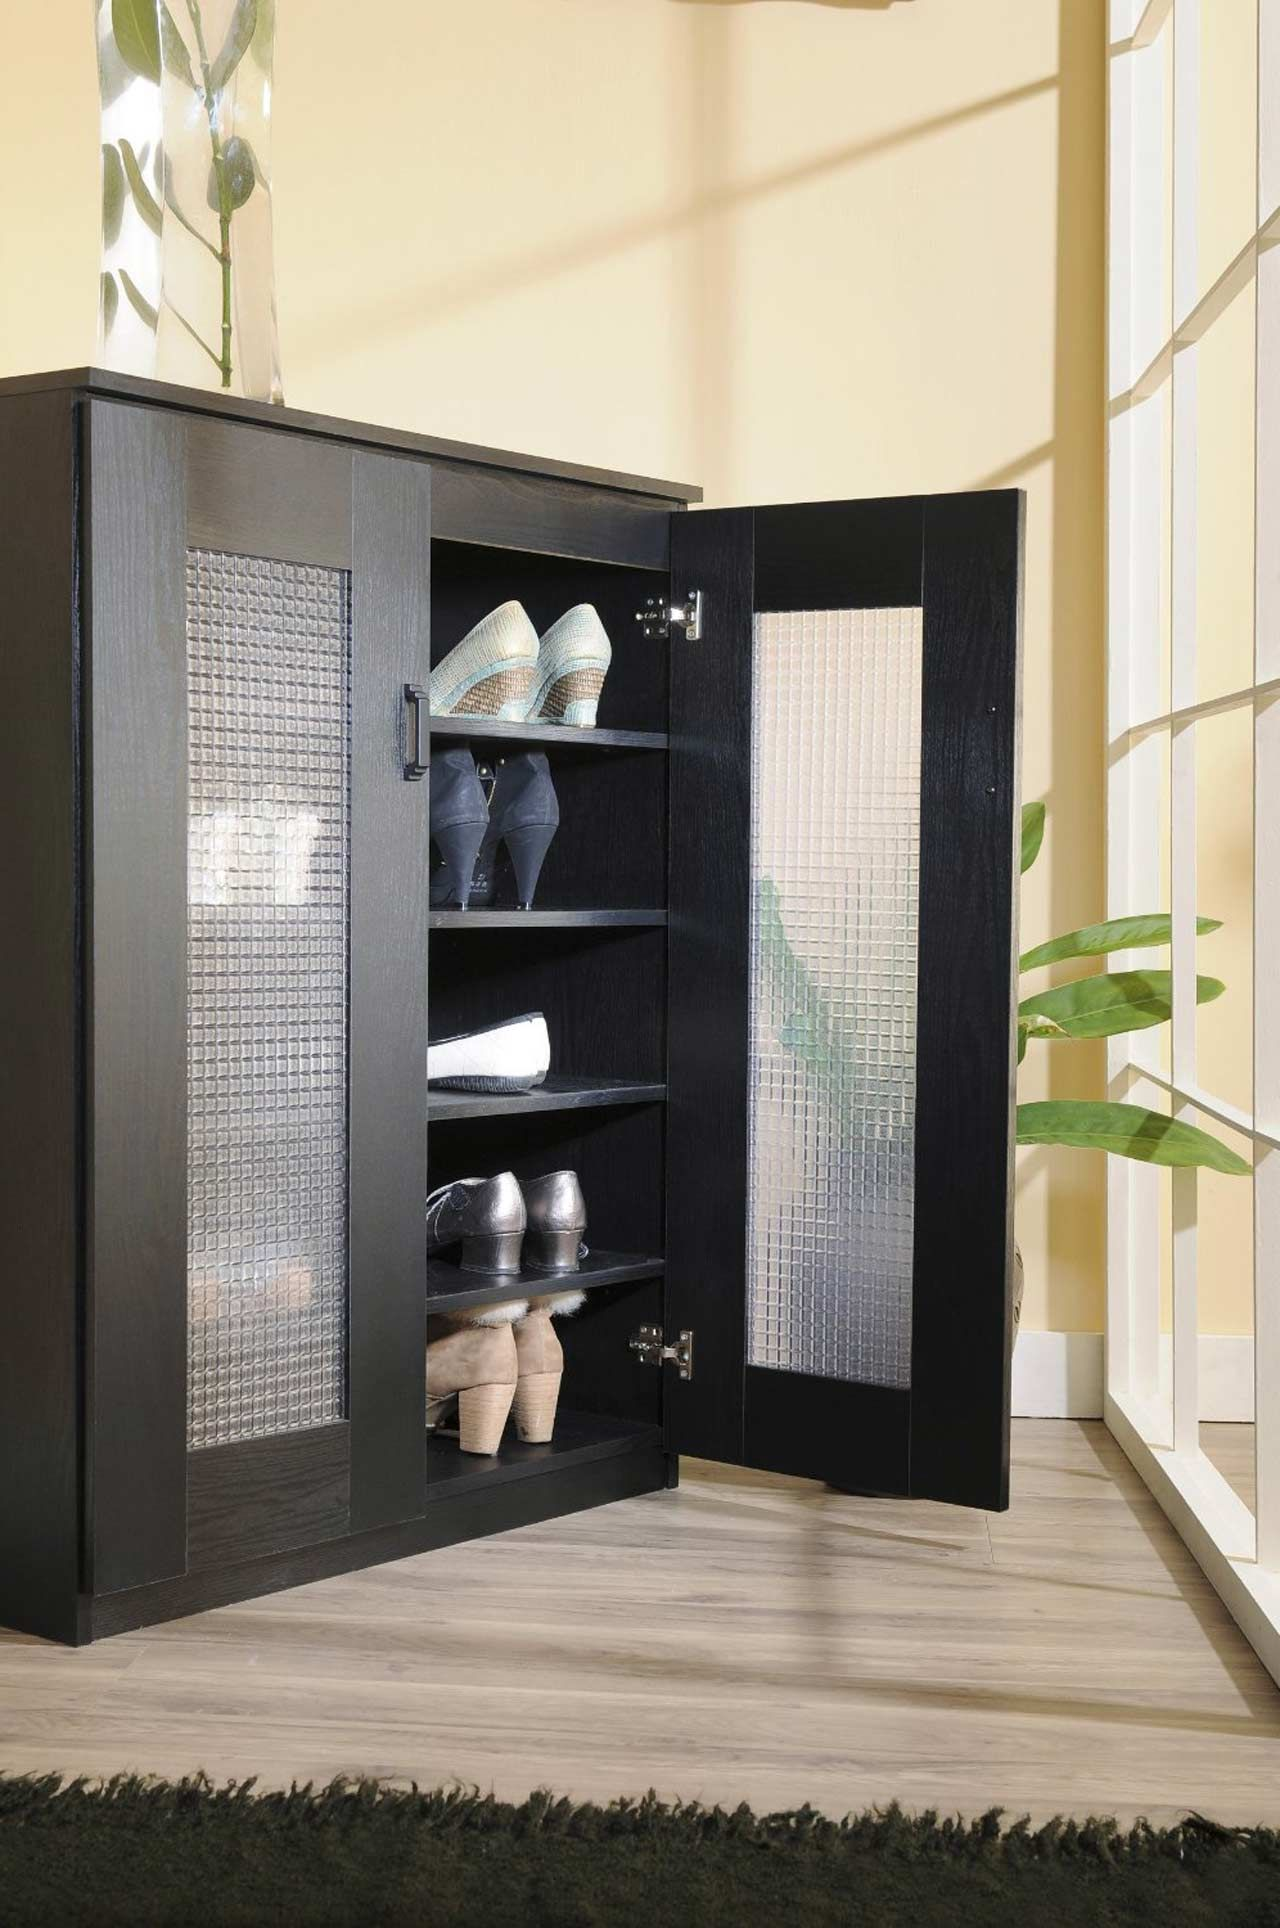 Shoe cabinets door design lookmyhomessavingshoes